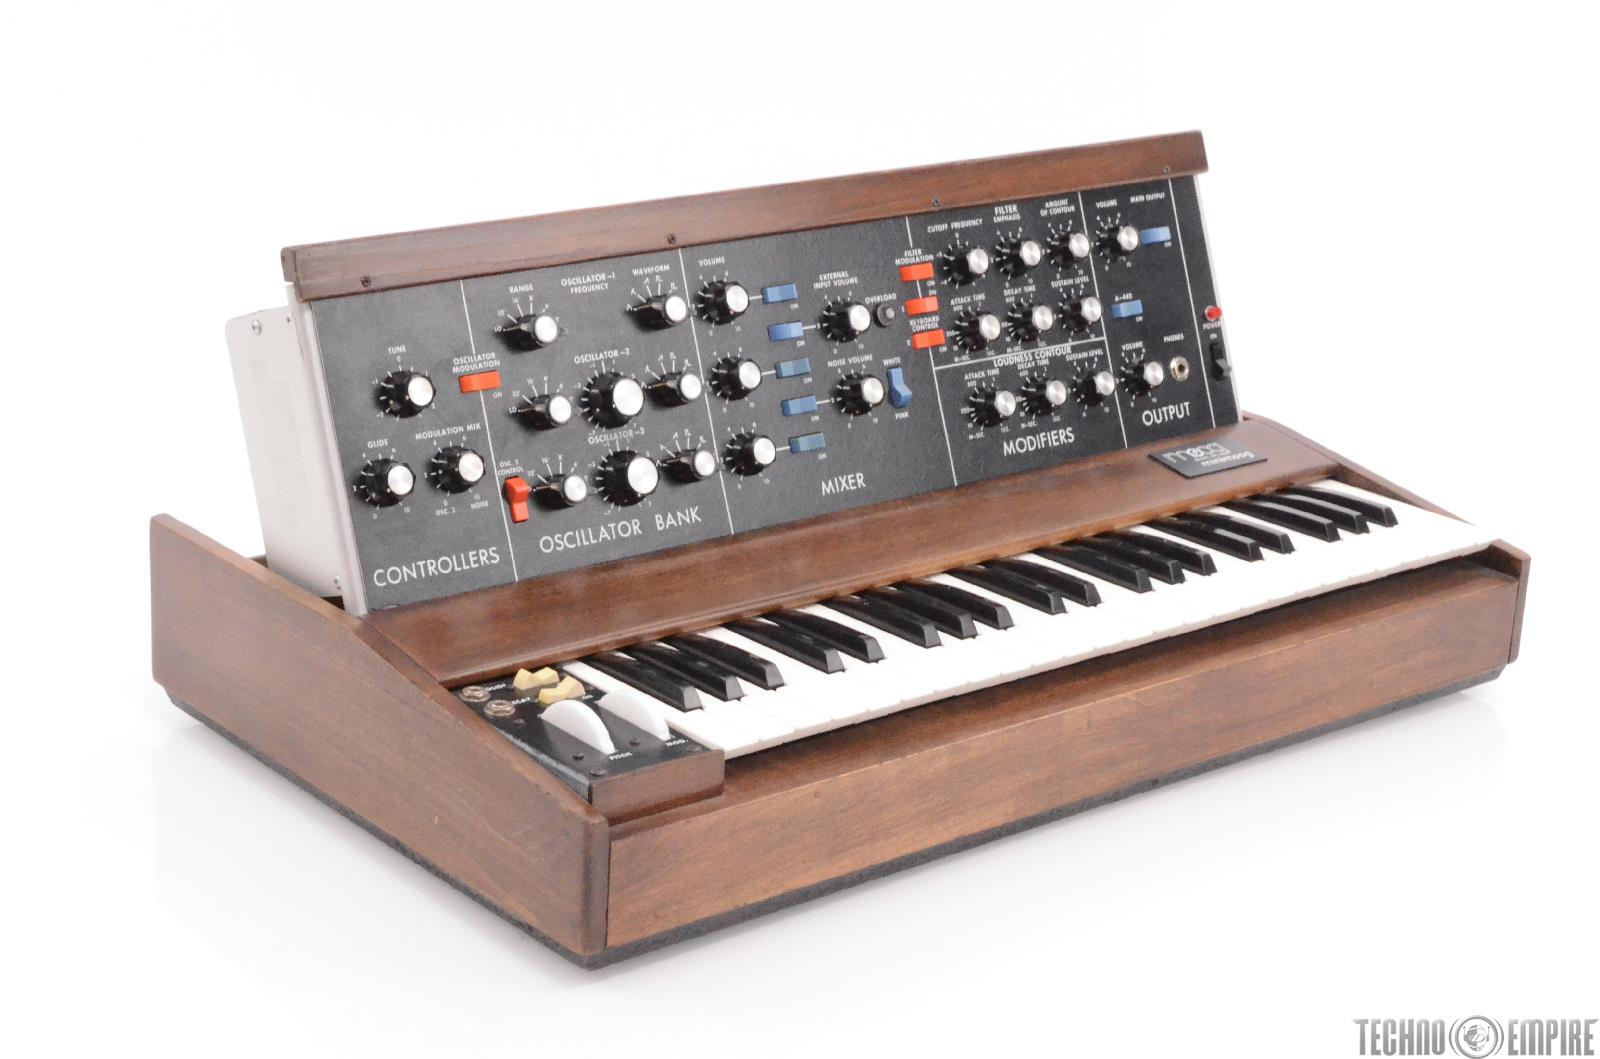 Moog Minimoog Model D Synthesizer Fairfax Recordings #28561